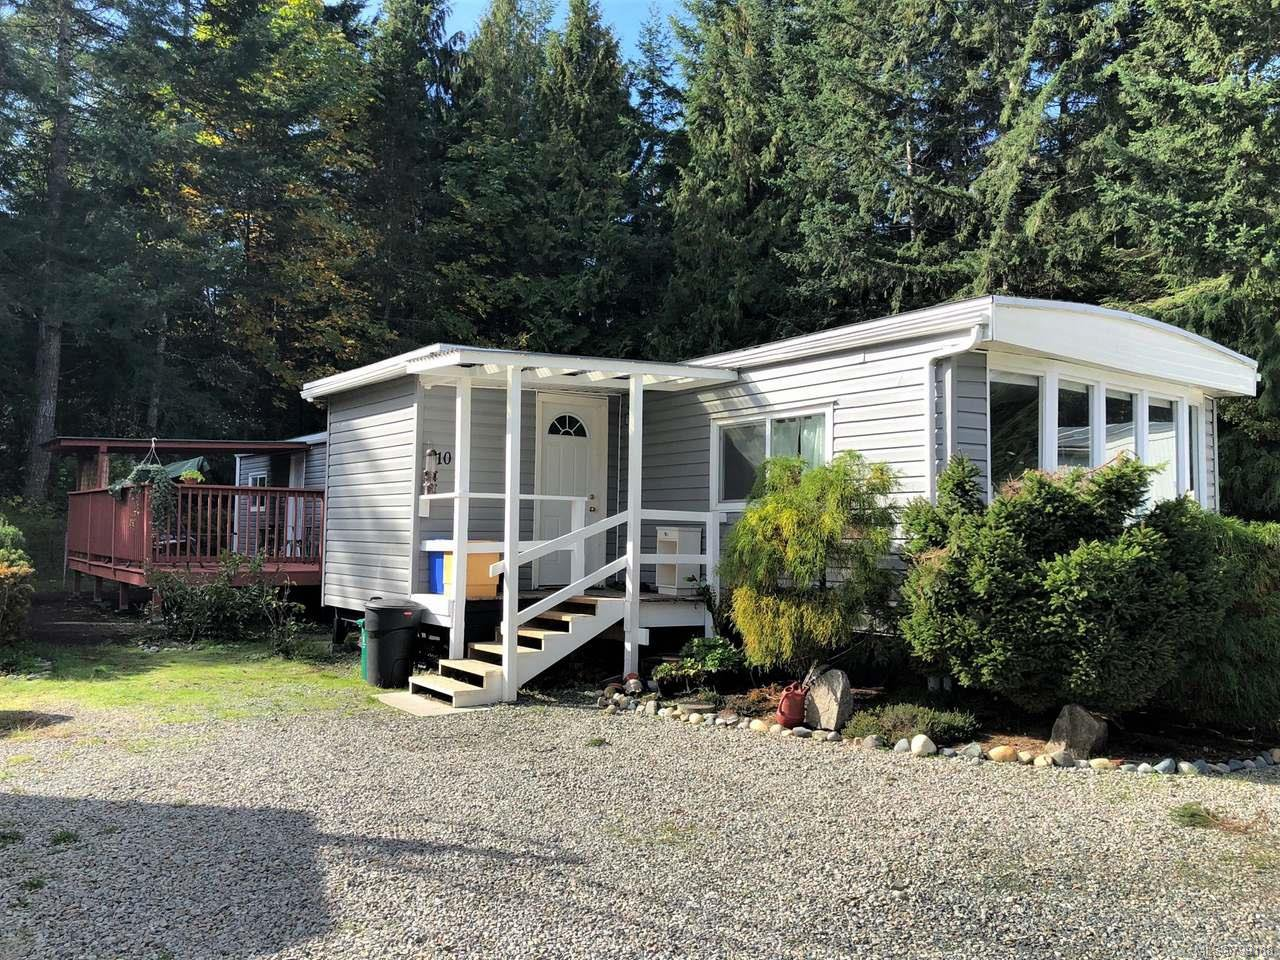 Main Photo: 10 3704 MELROSE ROAD in QUALICUM BEACH: PQ Errington/Coombs/Hilliers Manufactured Home for sale (Parksville/Qualicum)  : MLS®# 799188